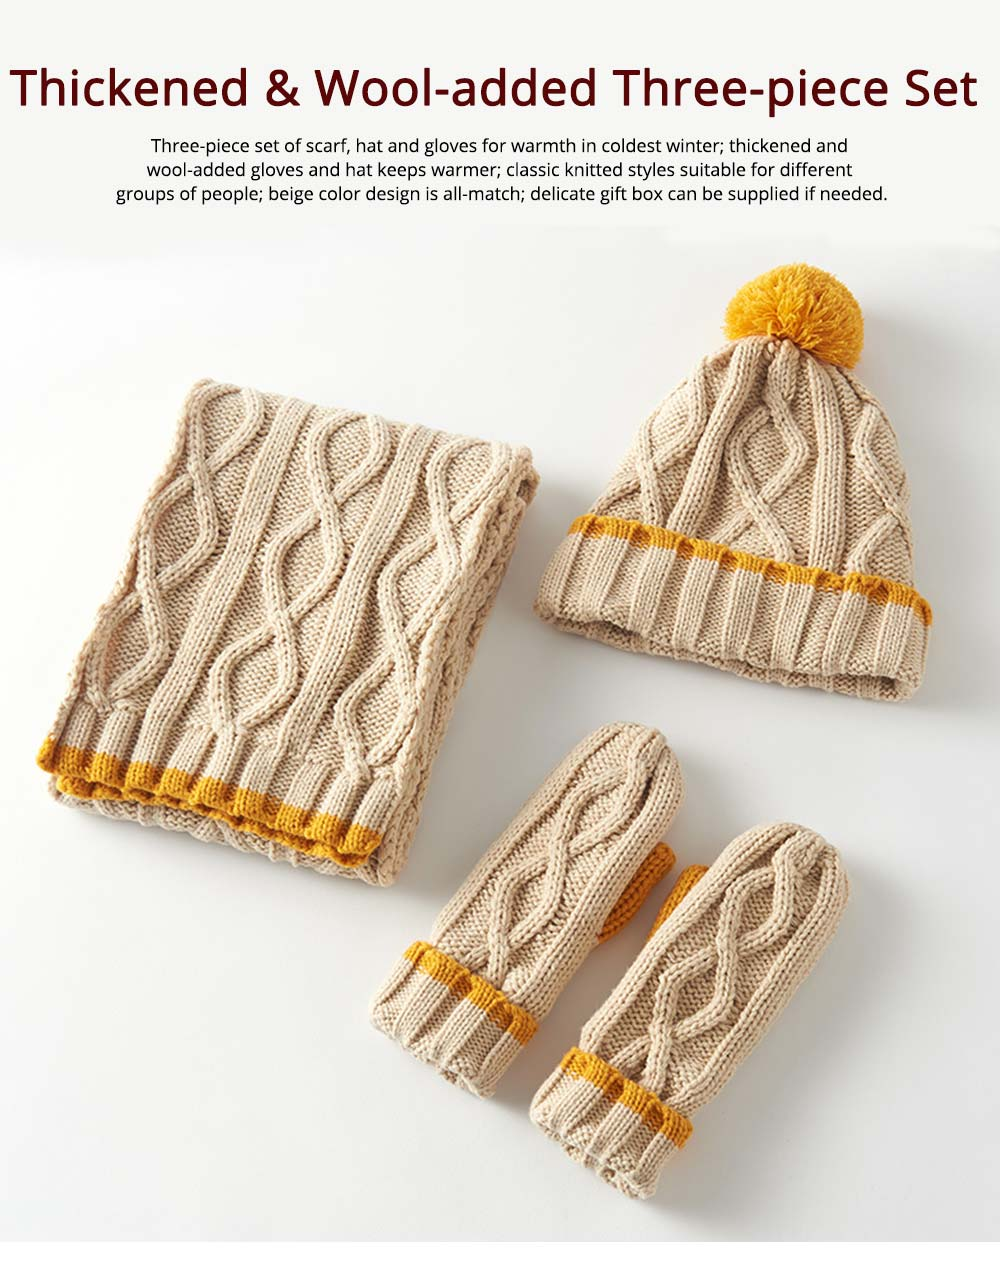 Women's Hats Gloves Scarves Thickened Wool-added Three-piece Set as Gift for Friends 0